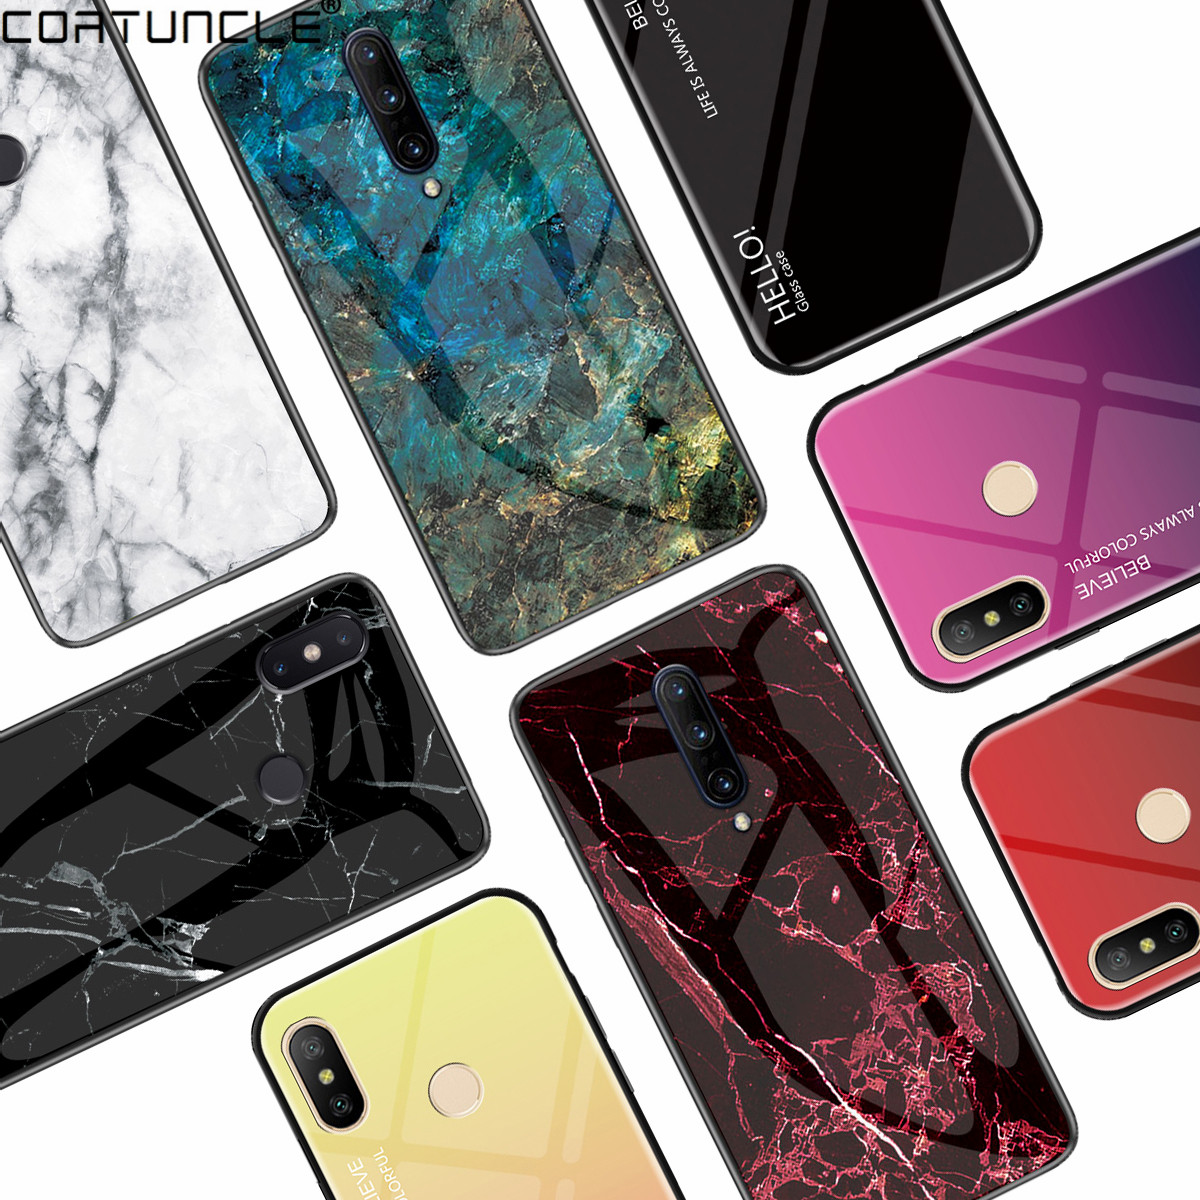 Marble Hard Tempered <font><b>Glass</b></font> <font><b>Case</b></font> For Coque <font><b>Nokia</b></font> 4.2 <font><b>Case</b></font> Gradient Protective Back Cover For <font><b>Nokia</b></font> 1 7 3.1 <font><b>6.1</b></font> 7.1 X71 Phone <font><b>Case</b></font> image